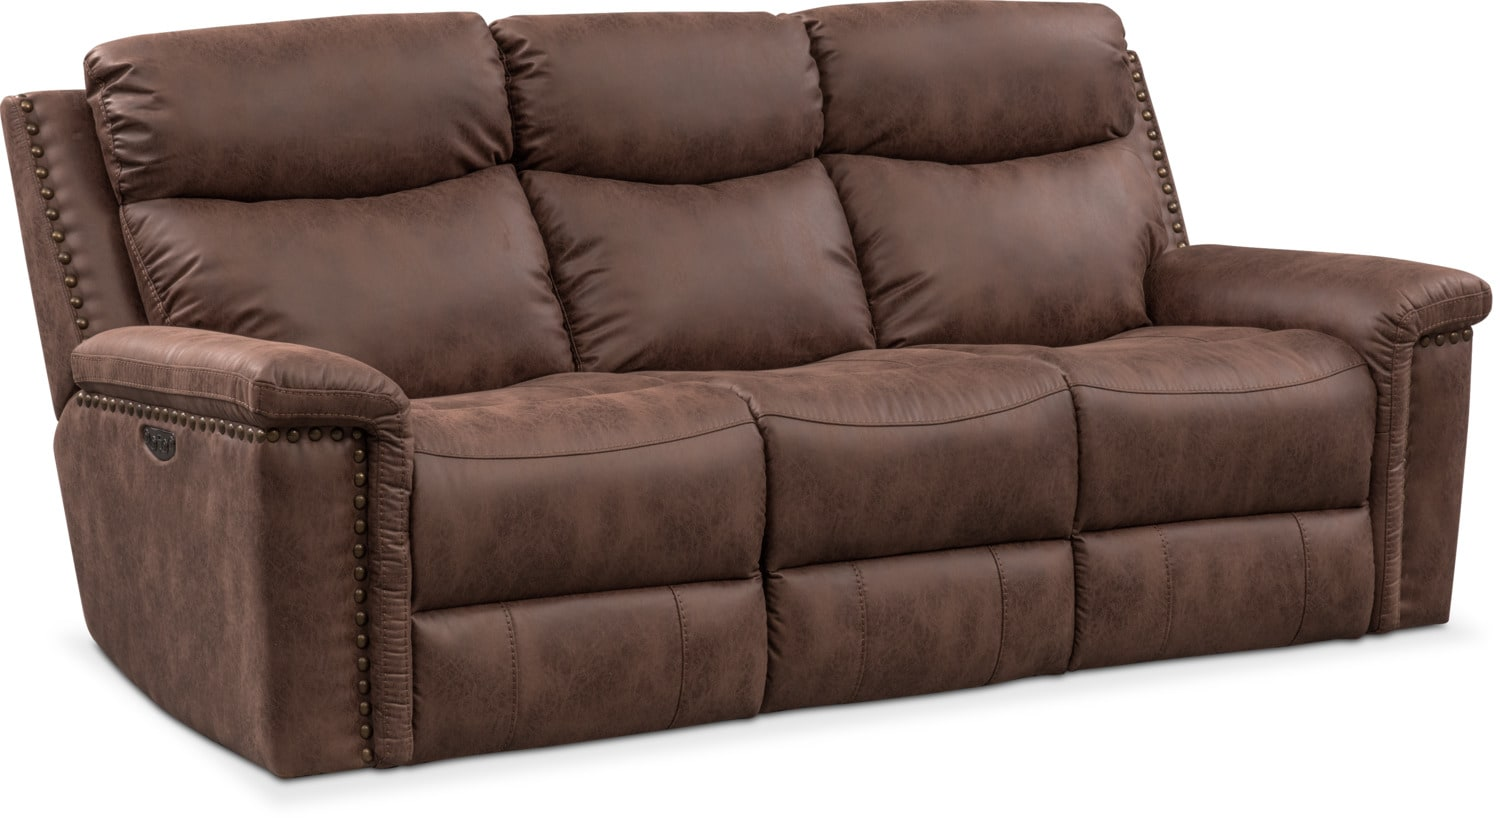 Living Room Furniture - Montana Dual Power Reclining Sofa